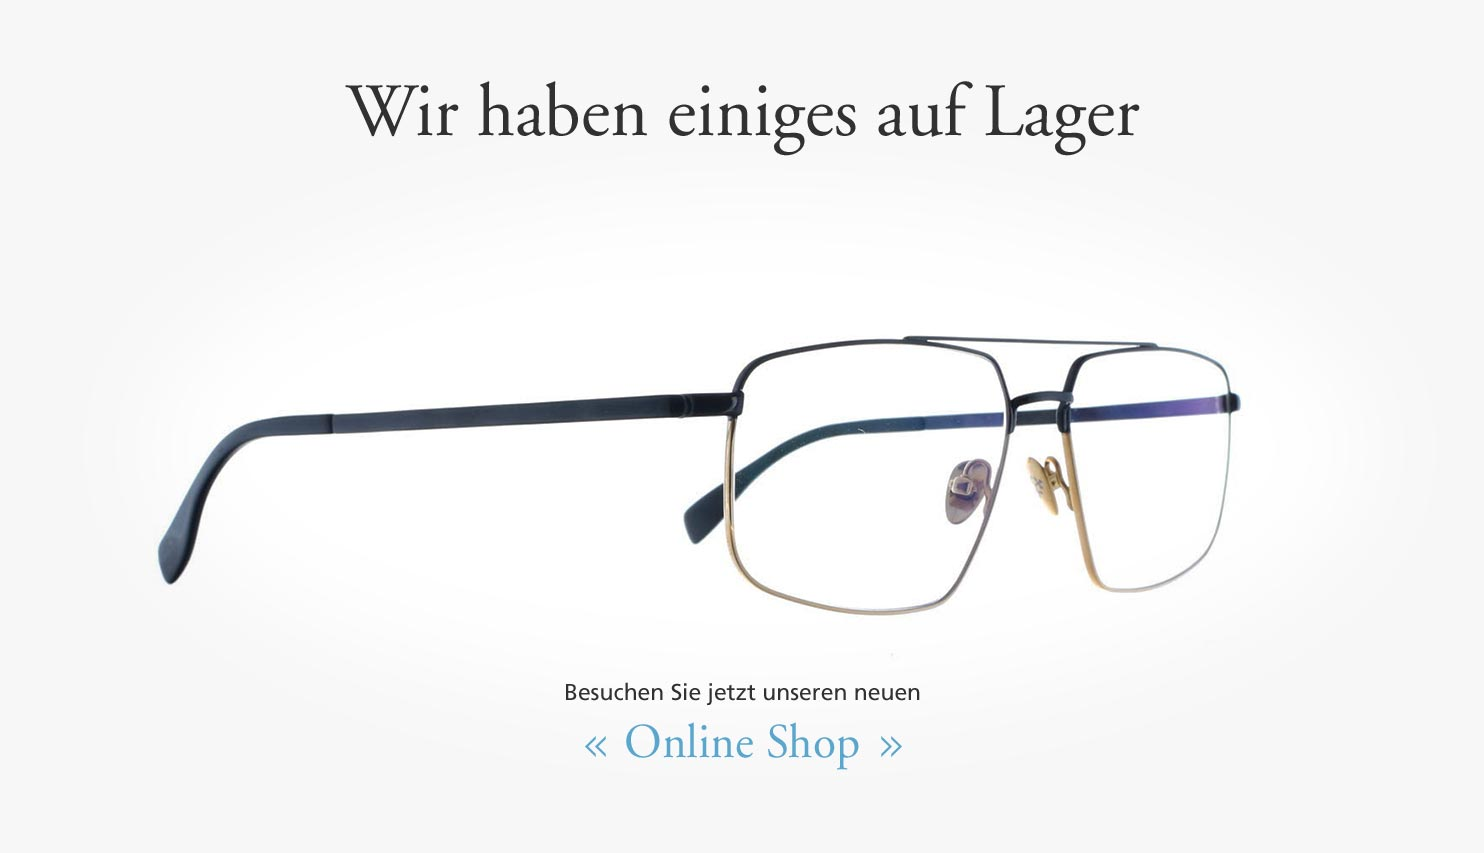 start-onlineshop-sep2020-01-links.jpg